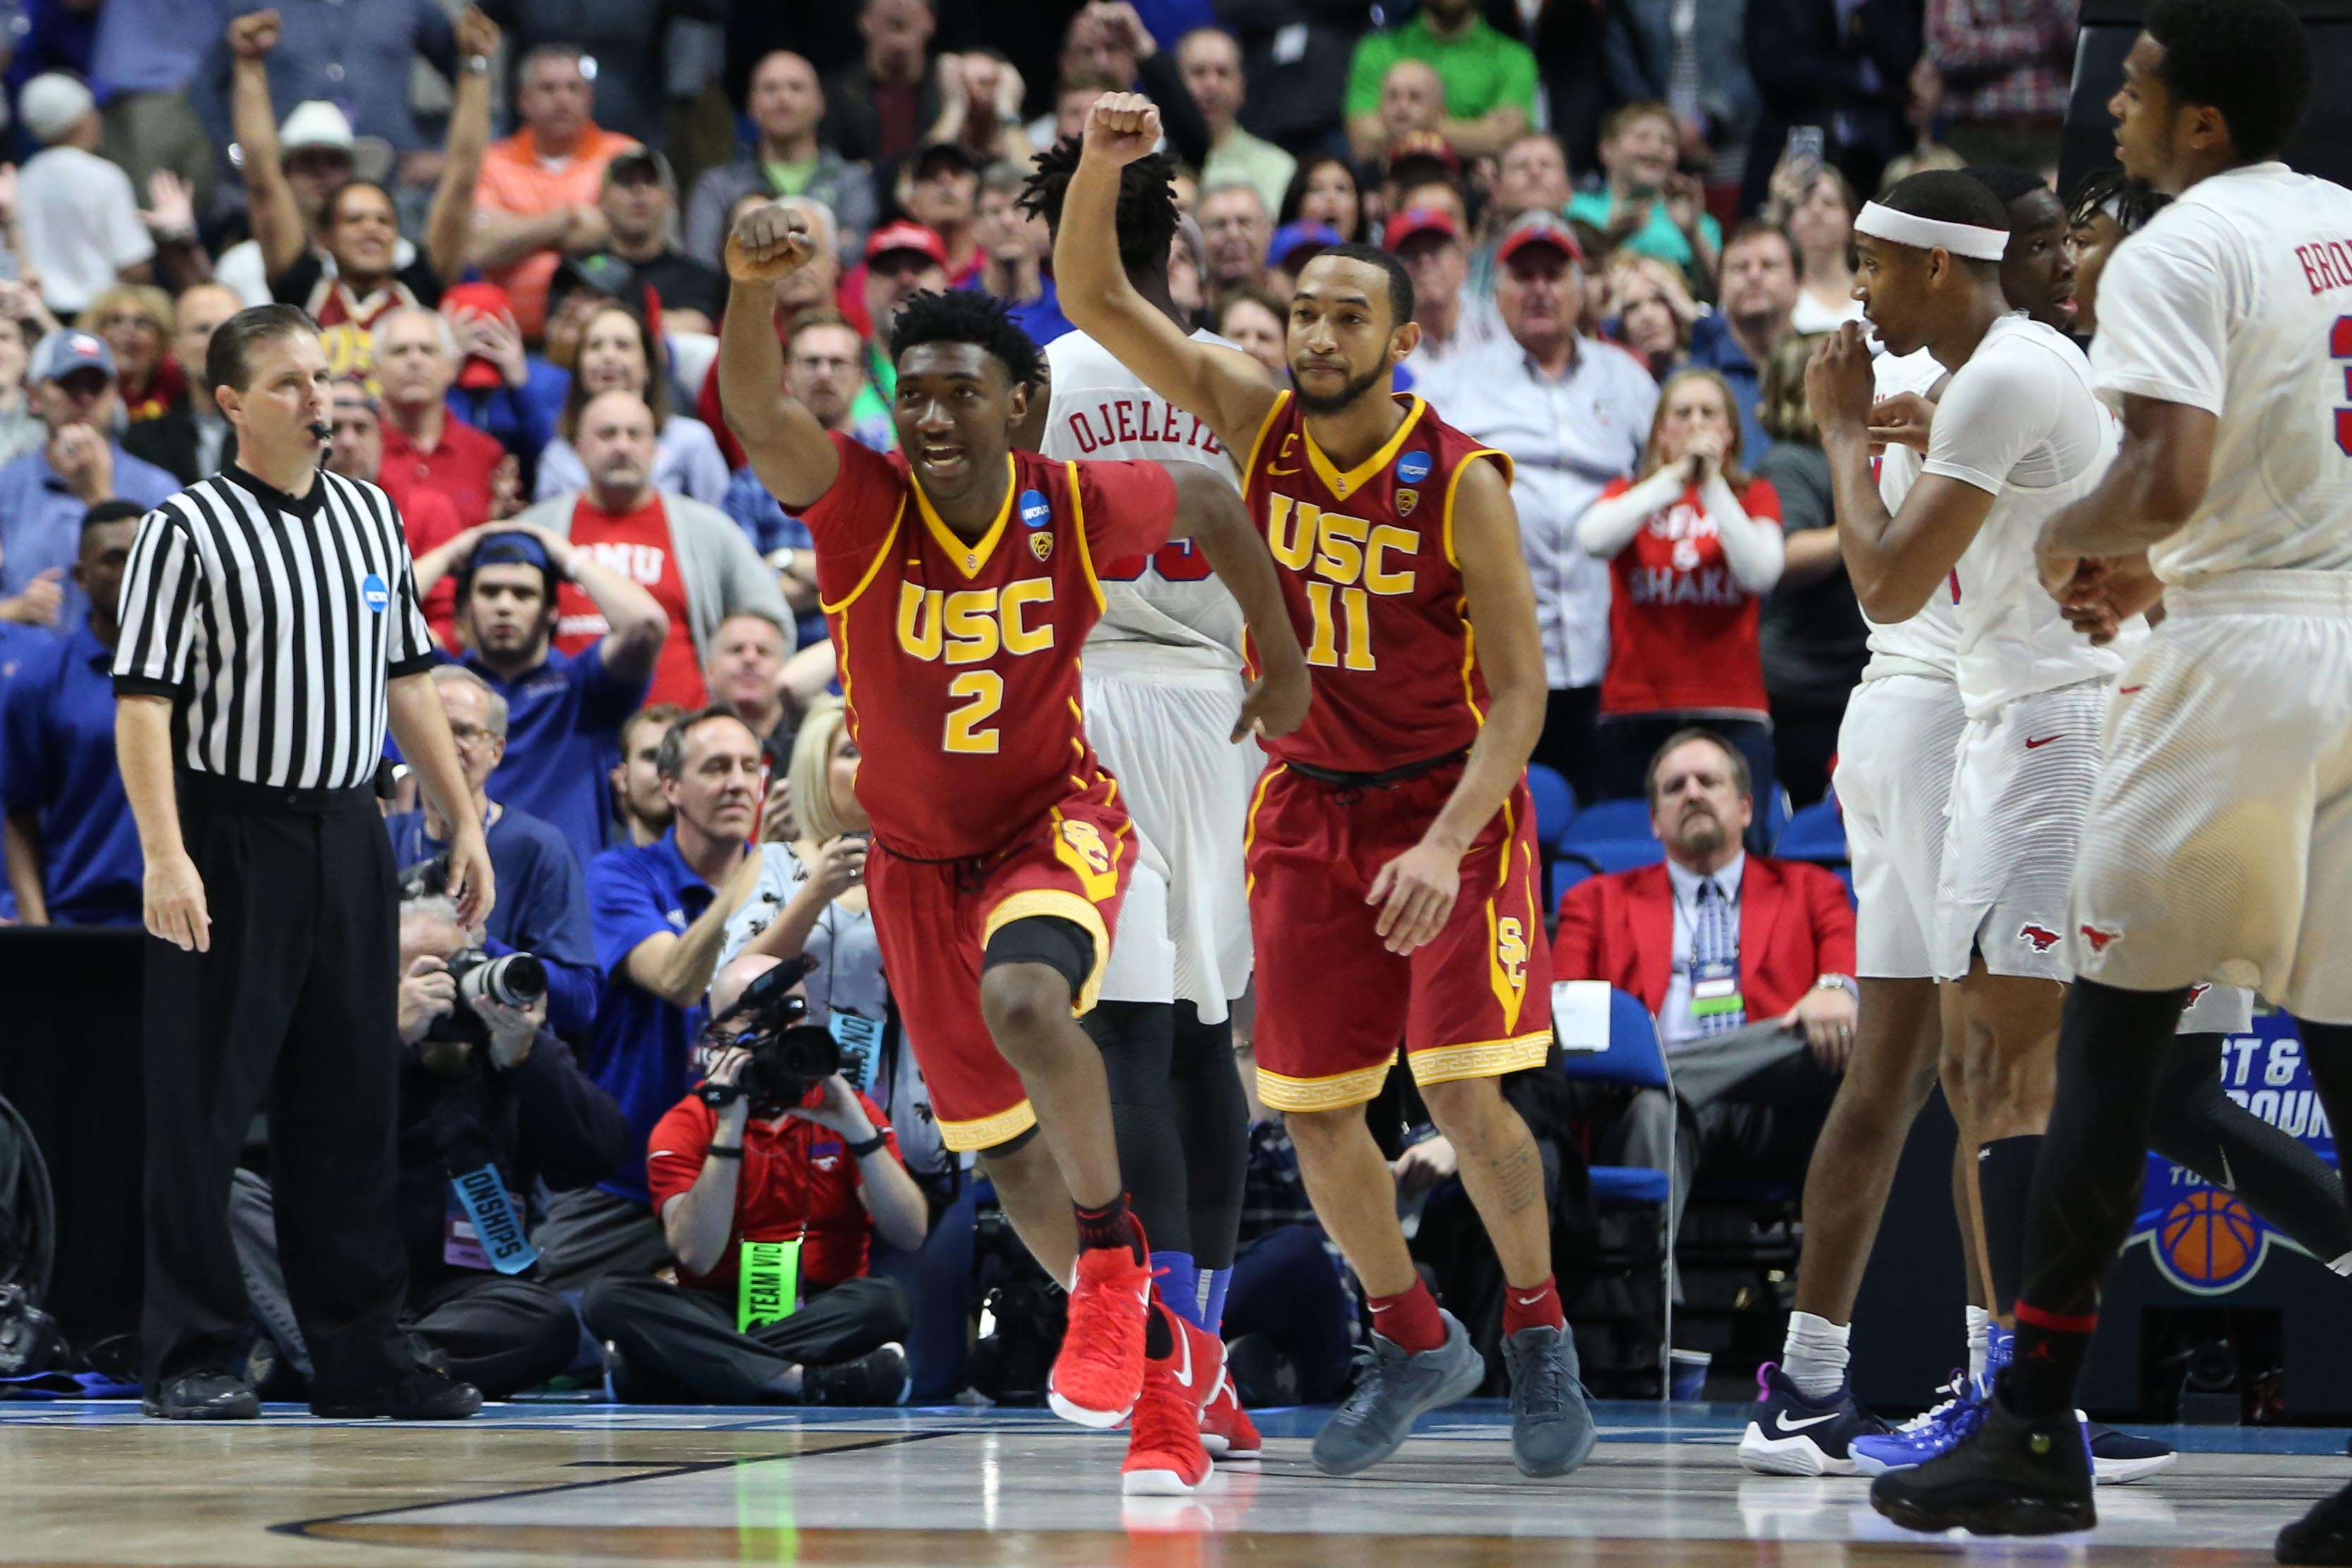 USC Basketball: Three Keys to Upset Baylor in Round of 32